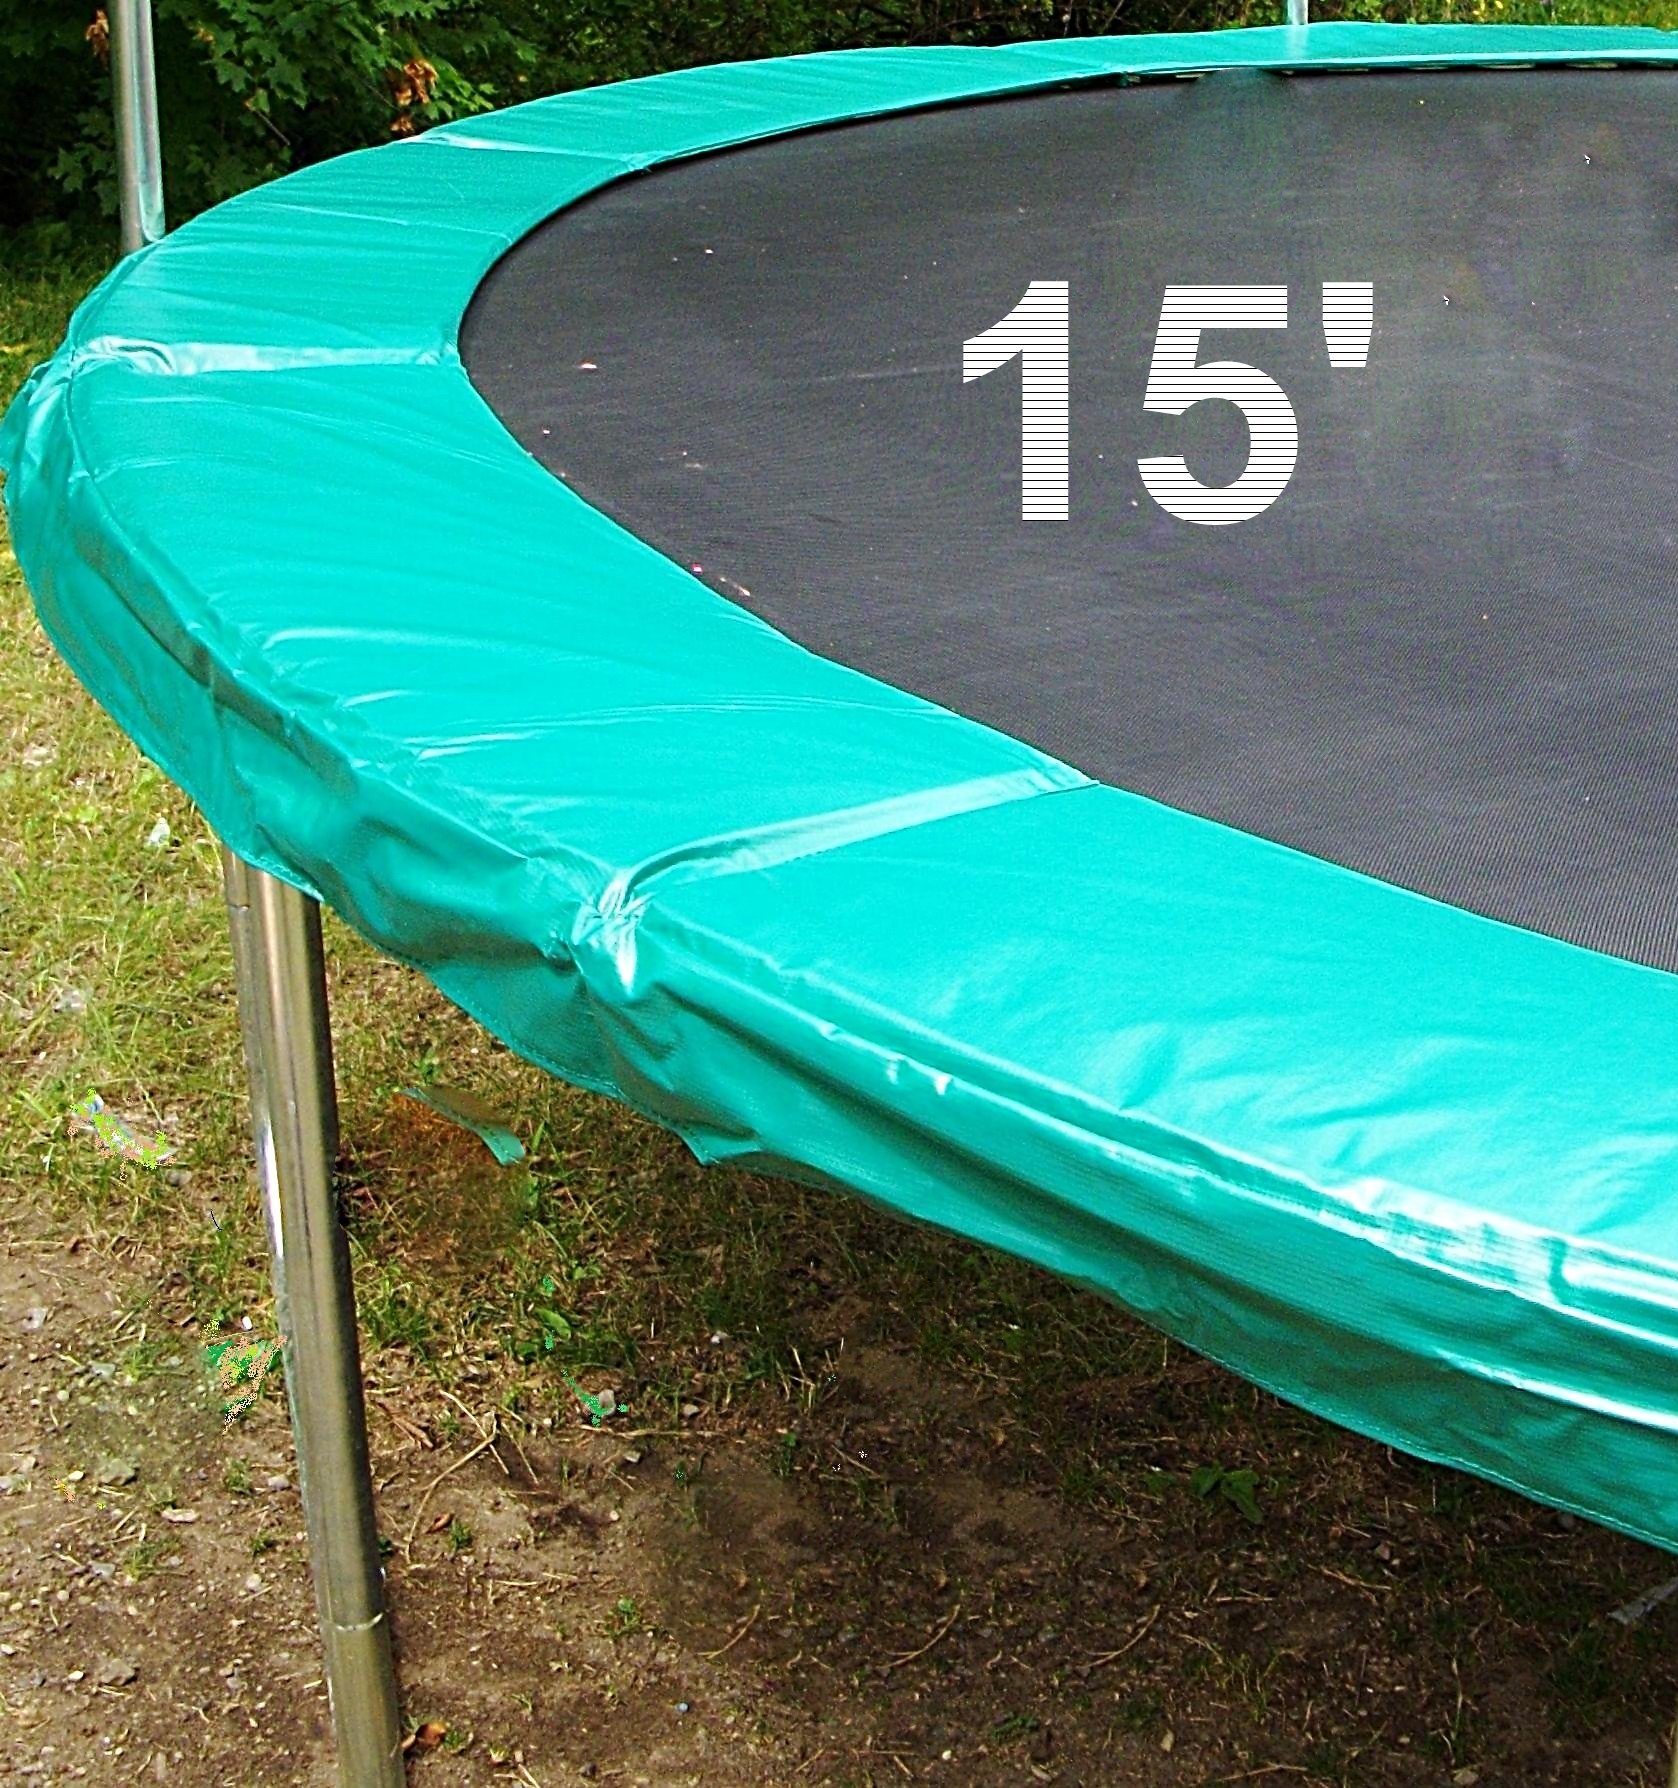 15' Trampoline Green Safety Pad to Cover Thr TrampolineUpper Bounce